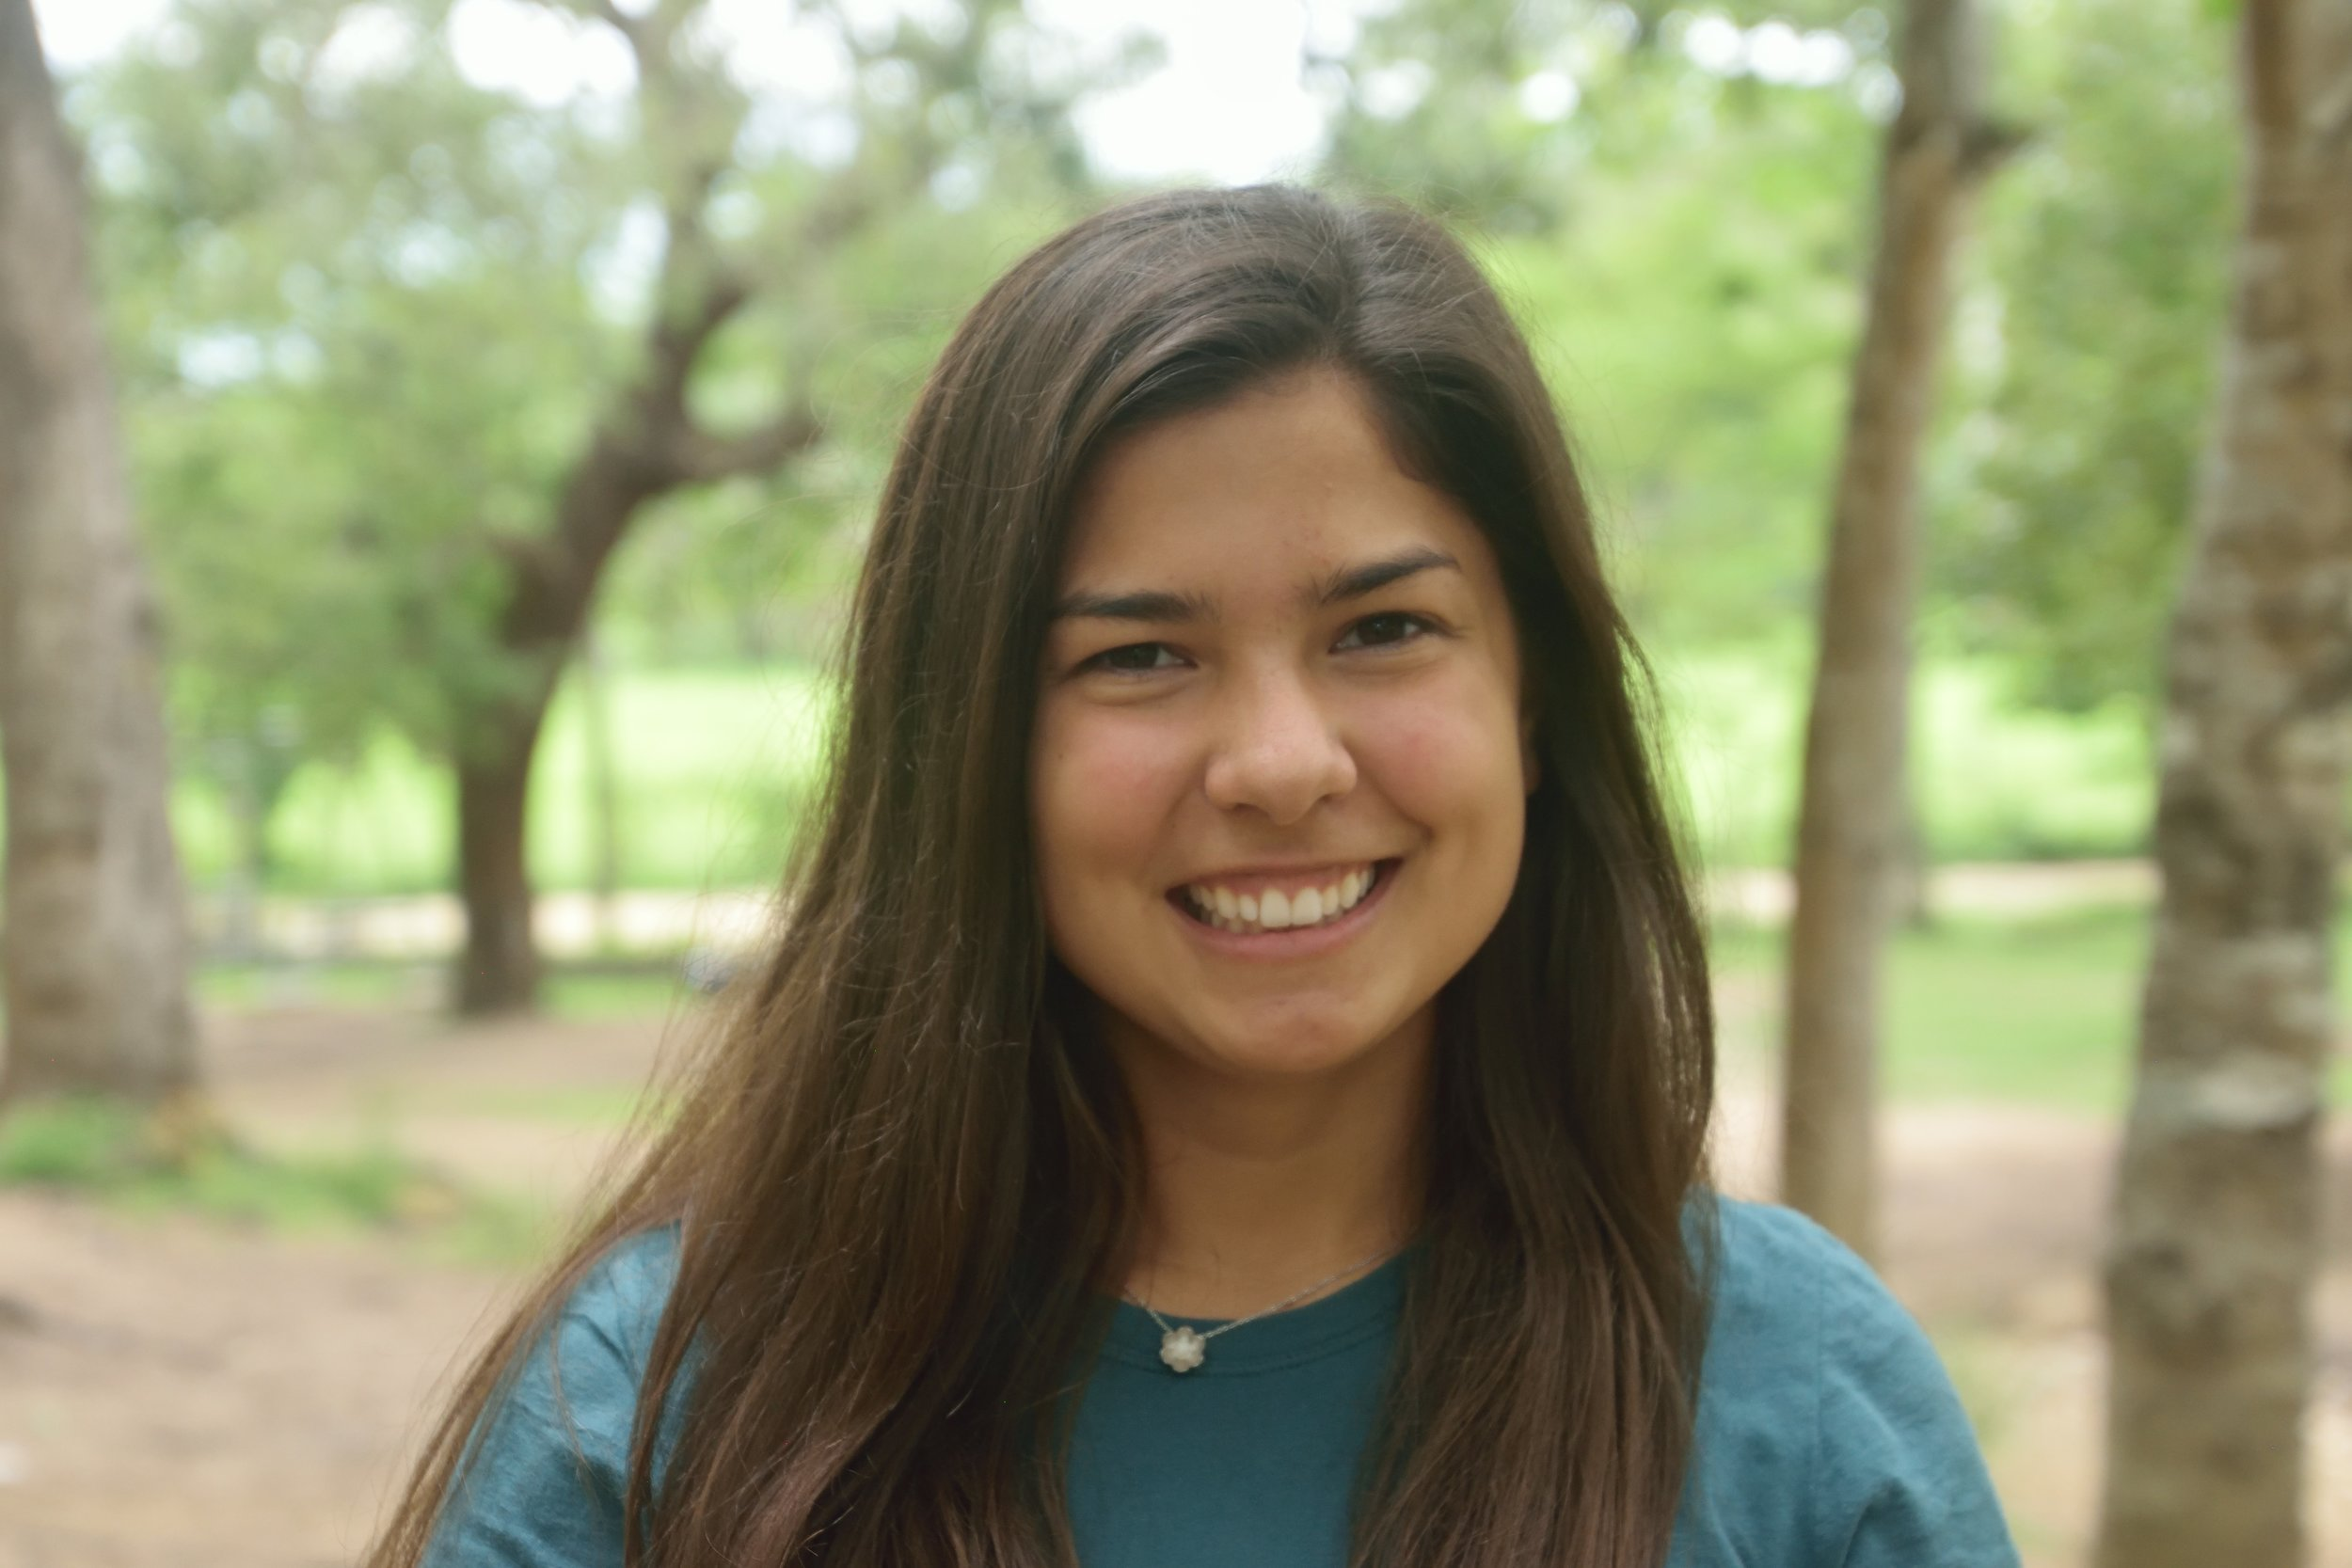 Grace, 22     Role in Escuelita:  Science Teacher   Favorite thing about Escuelita so far:  I've loved doing fun science experiments with the kids such as making lava lamps, an outdoor sun oven, and growing plants!